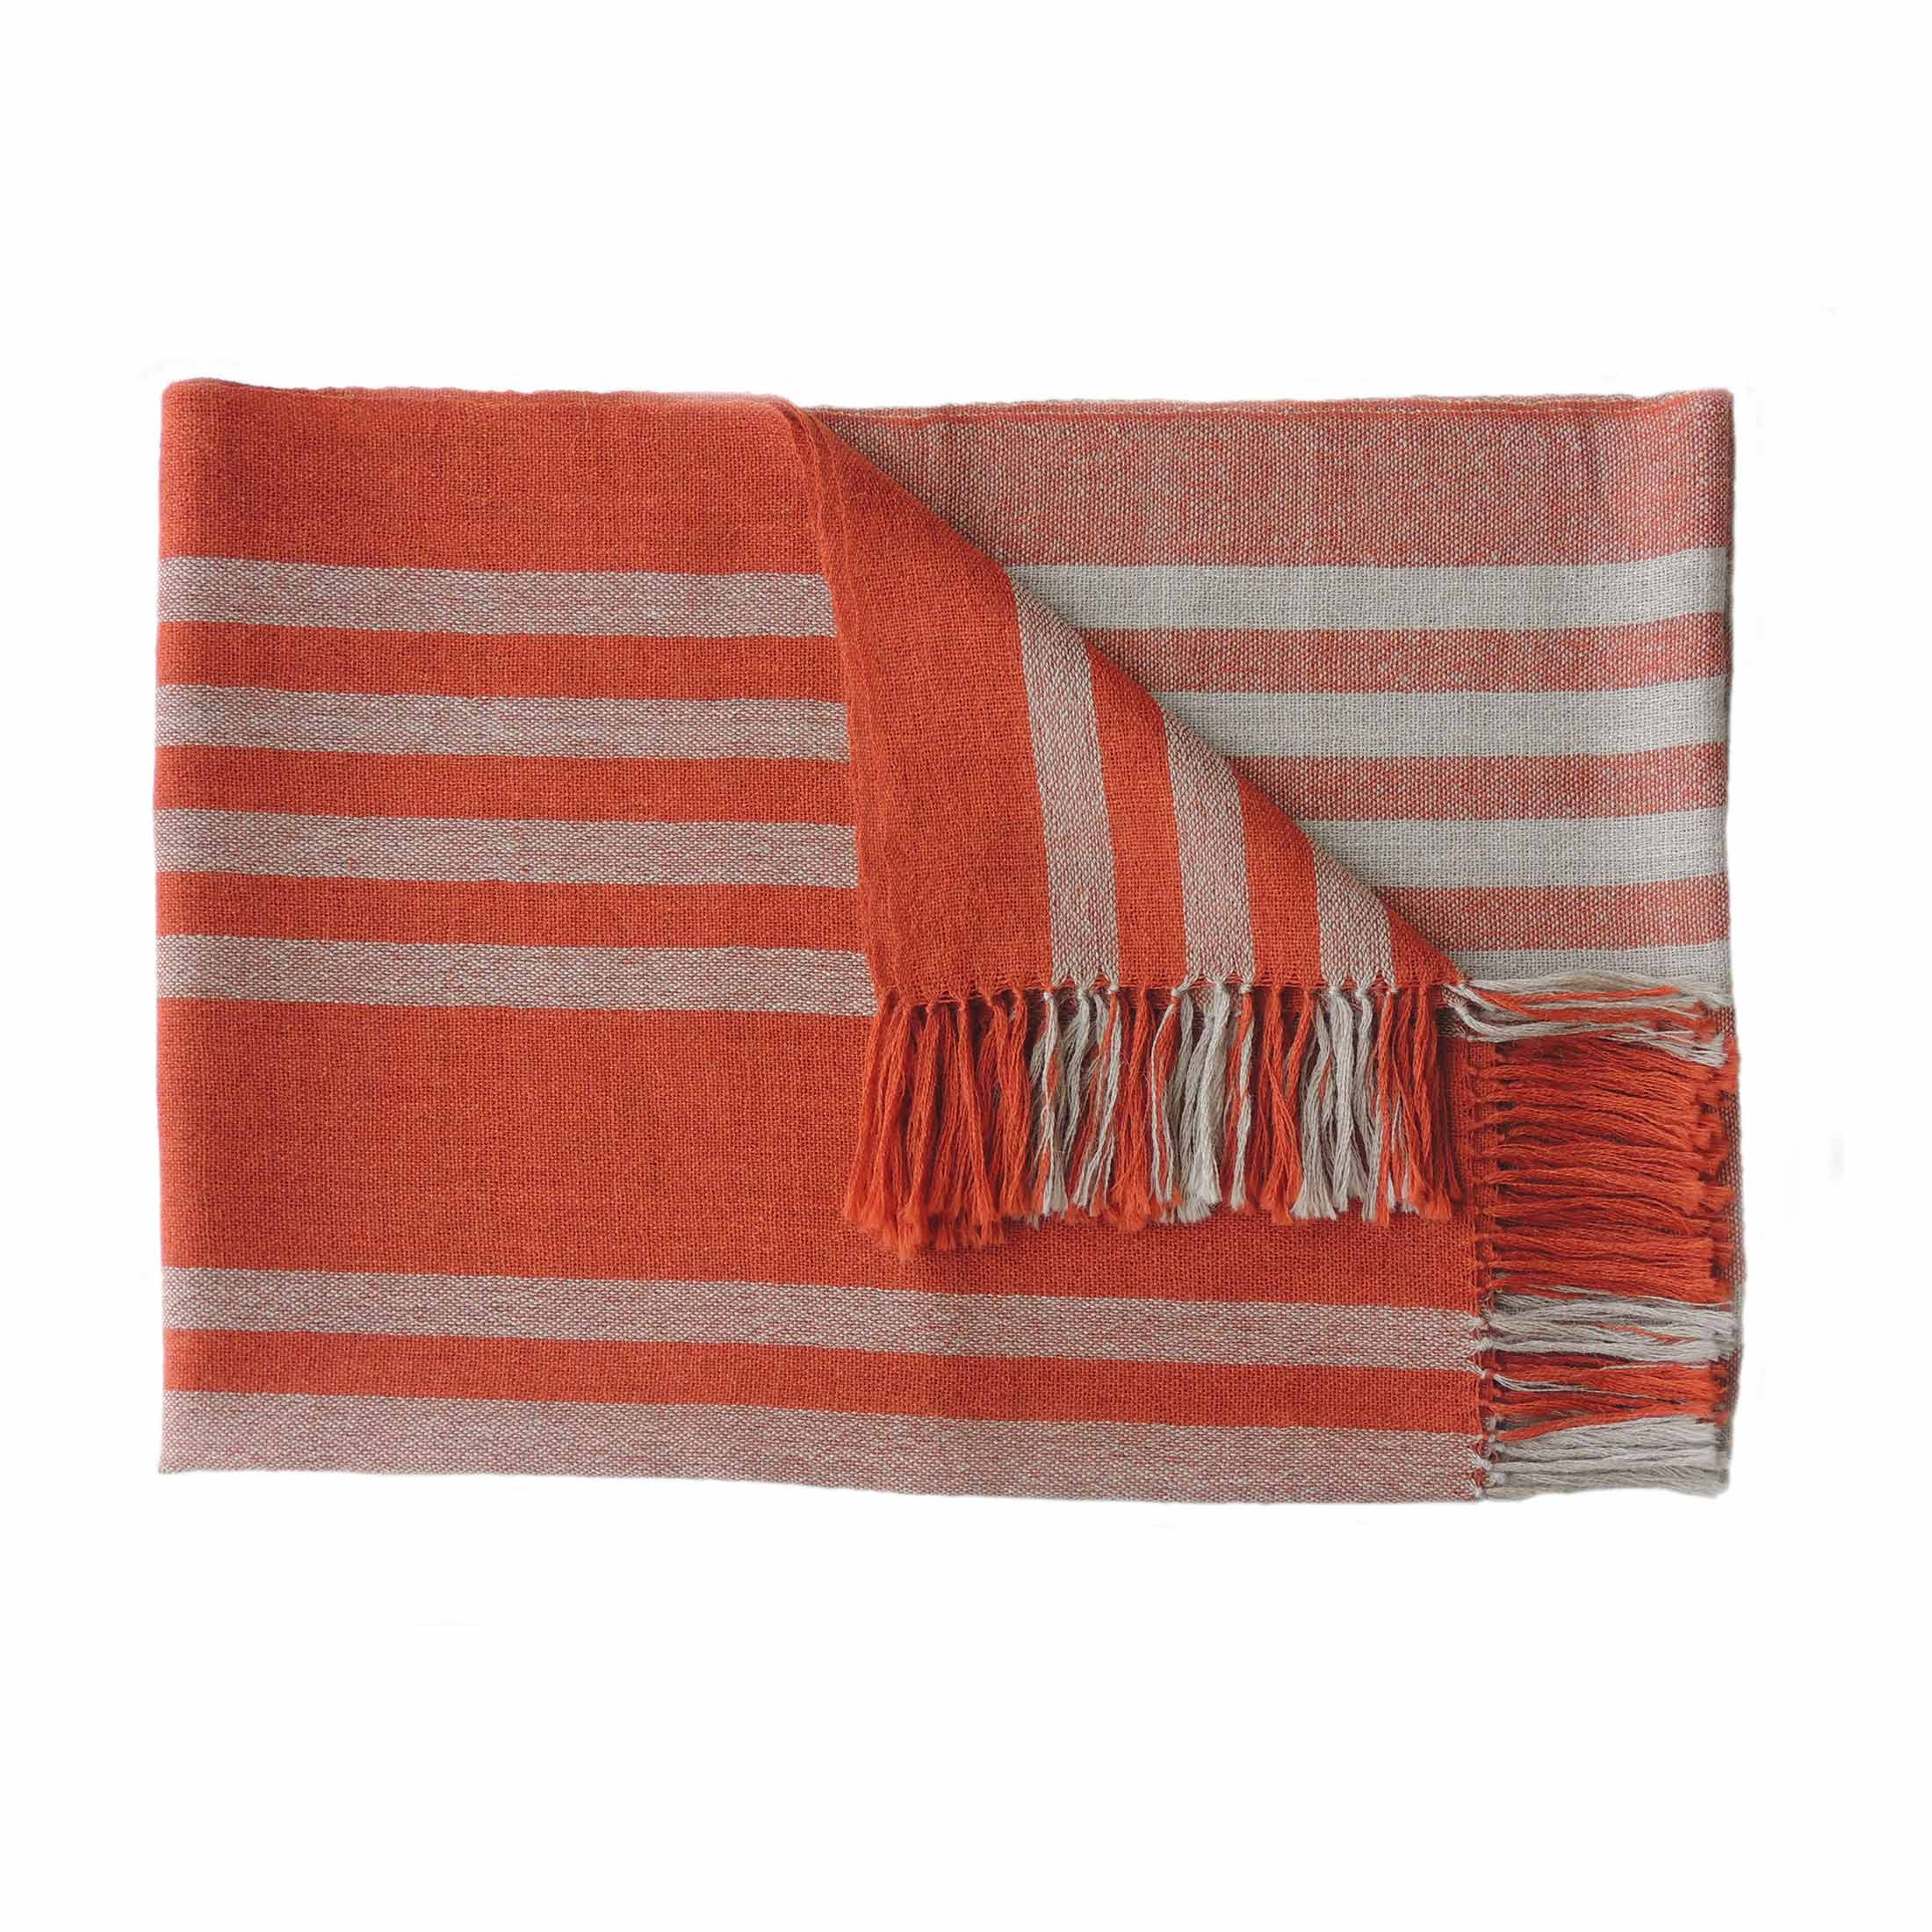 PFL knitwear Fine Handwoven Shawl / Stole, in soft baby alpaca with stripe pattern and fringes two color design light taupe and deep orange